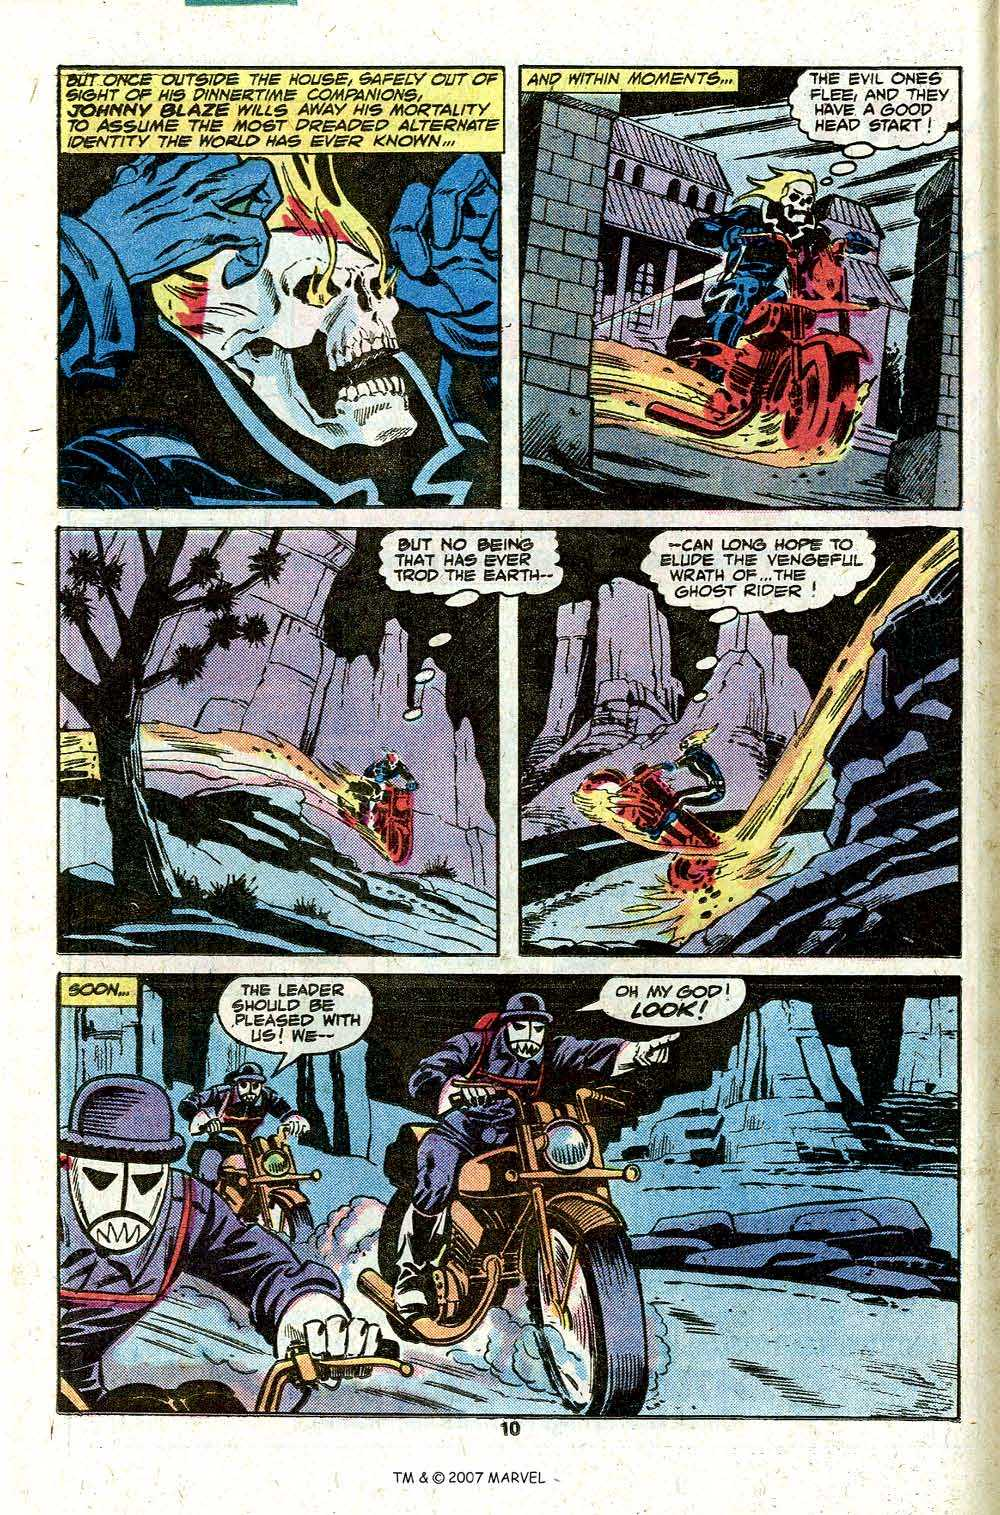 Ghost Rider (1973) #39 pg.12, lettered by Clem Robins.